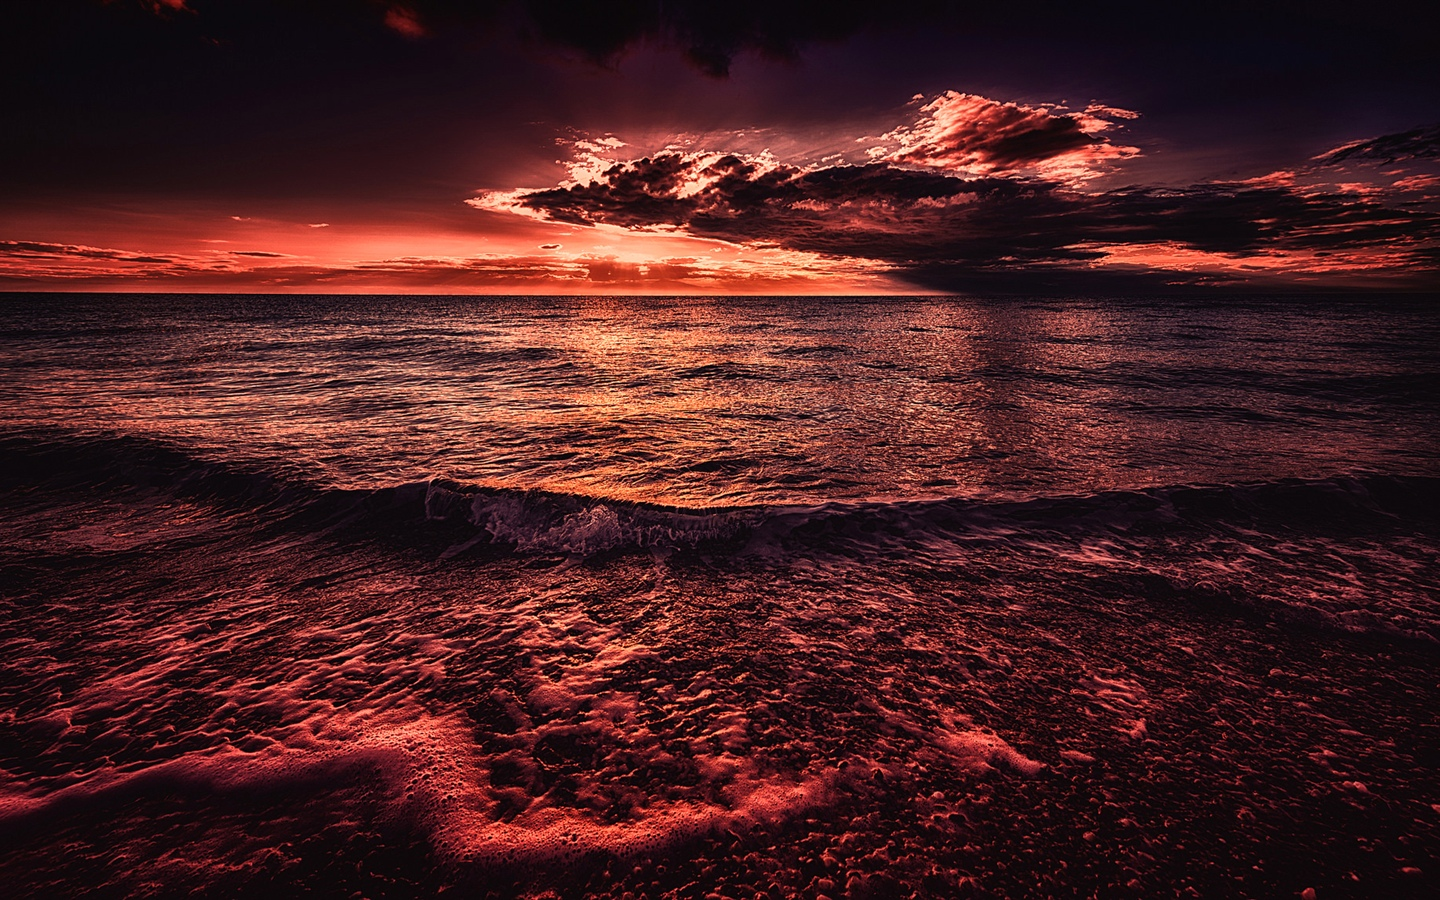 Sea, sunset, evening, red style 1440x900 wallpaper